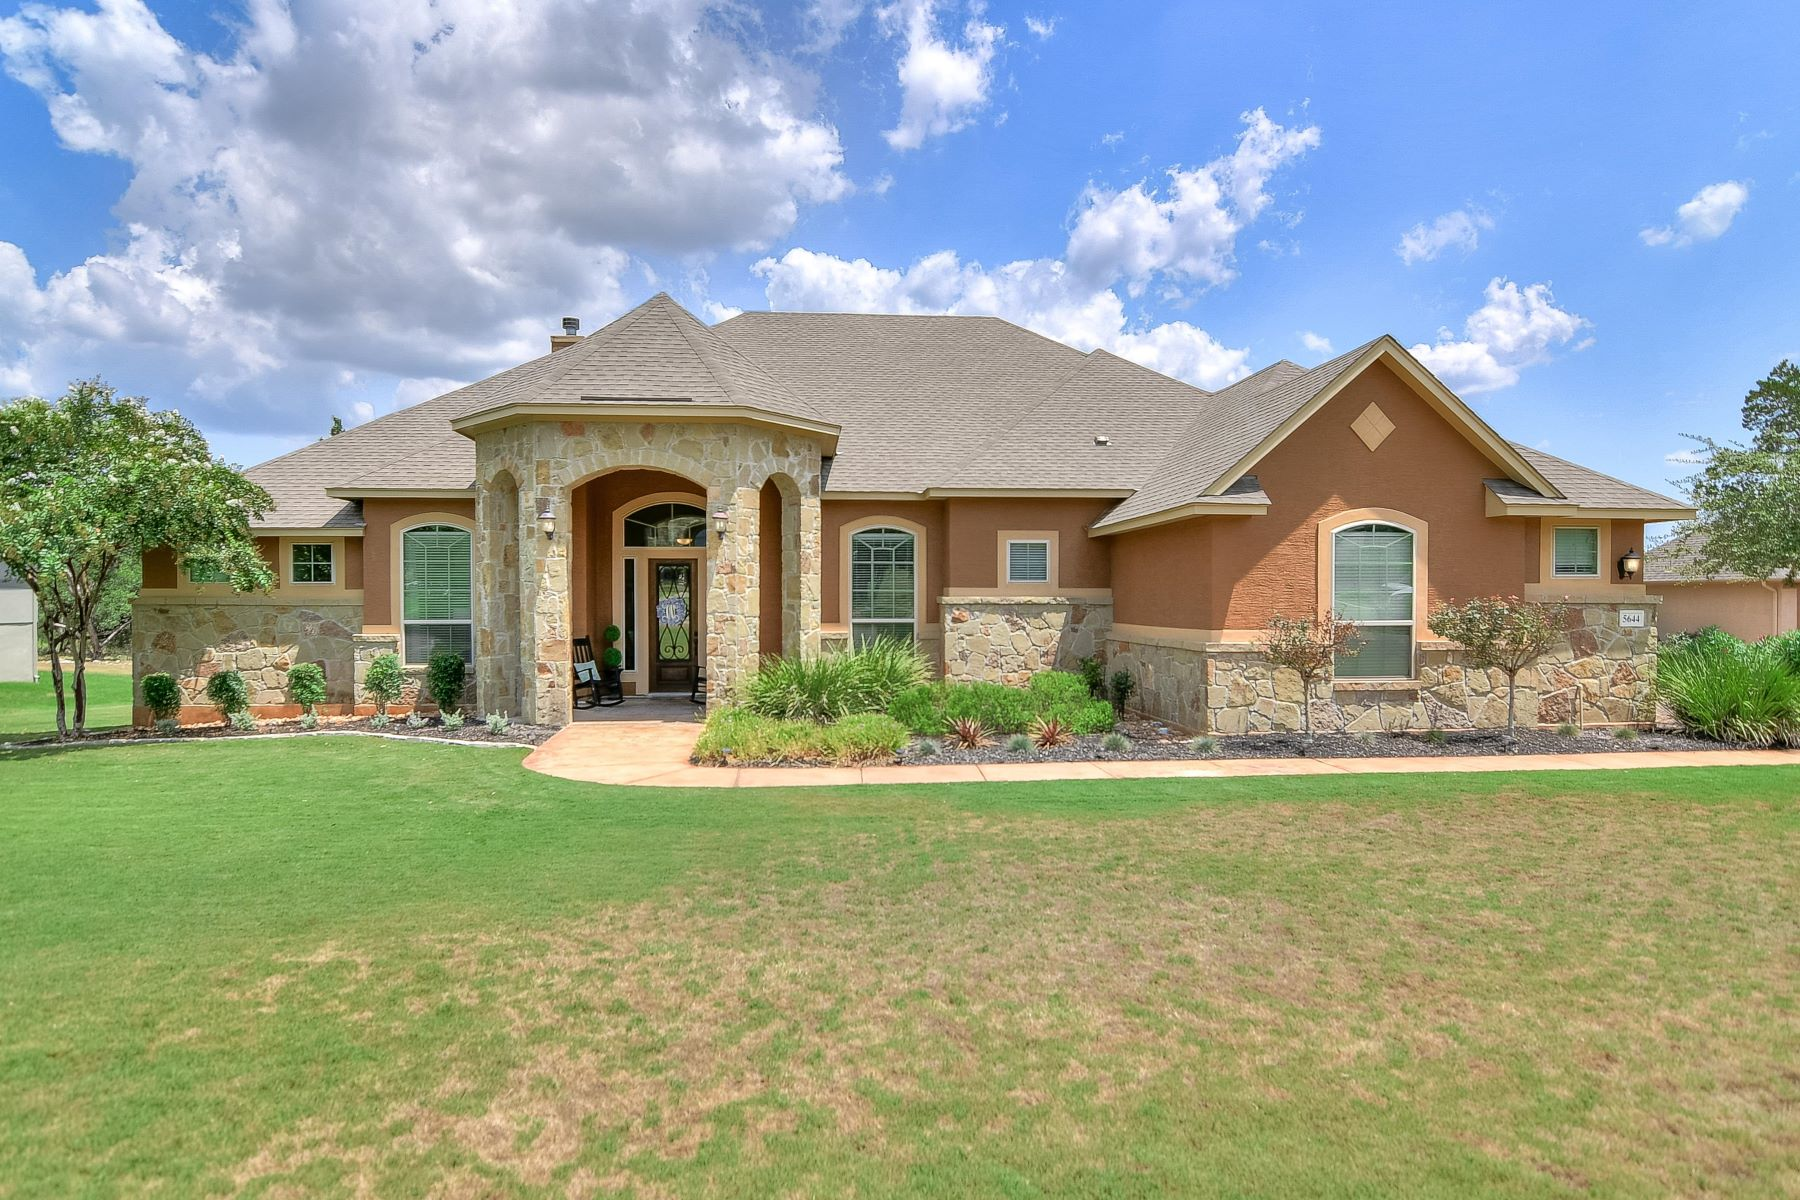 Single Family Homes for Sale at Magnificent Home in Copper Ridge 5644 Copper Creek New Braunfels, Texas 78132 United States